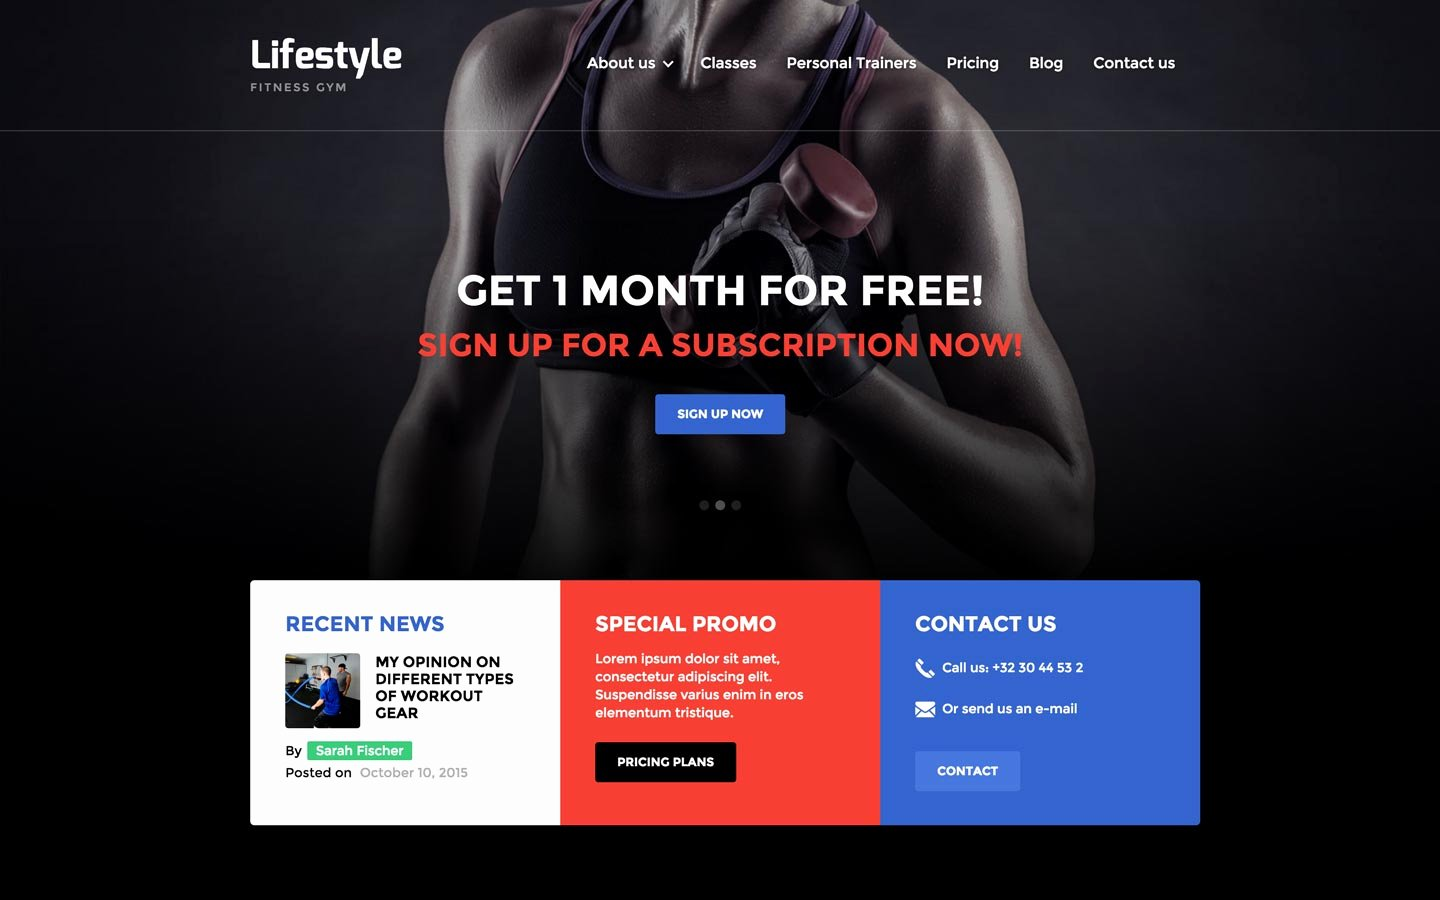 Personal Trainer Website Template Awesome Lifestyle Gym HTML5 Responsive Website Template